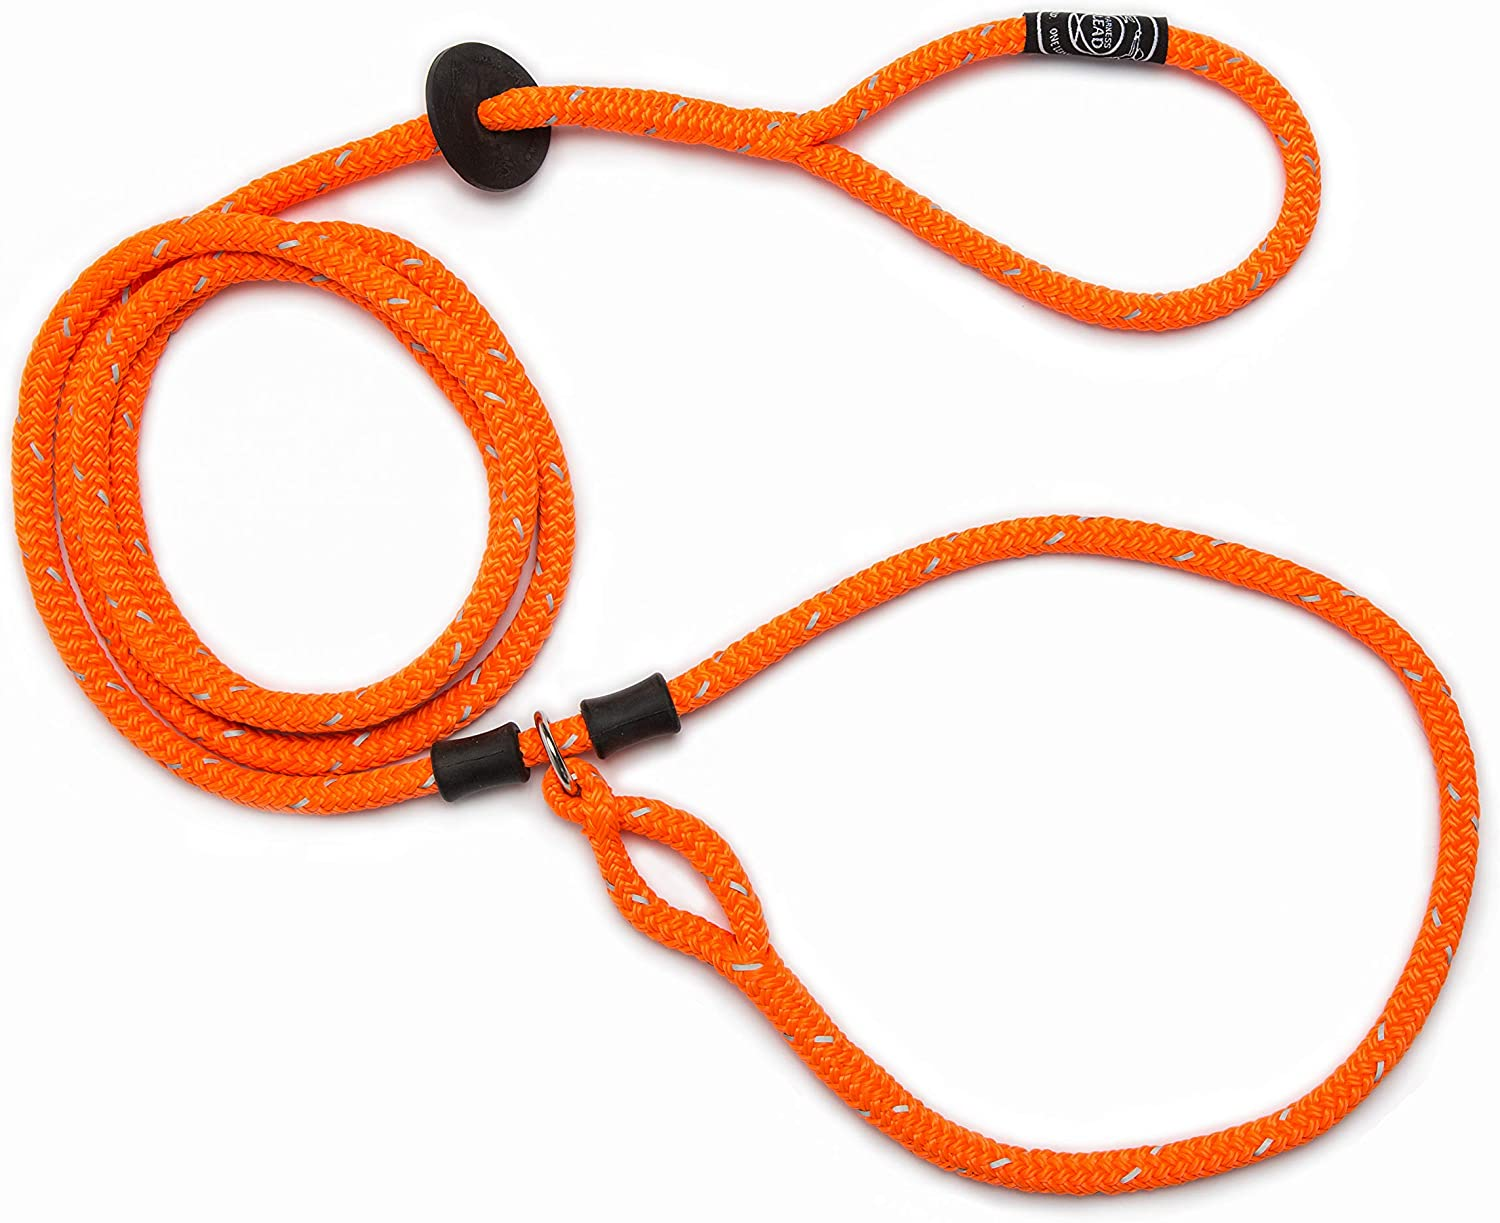 Harness Lead, Escape Resistant Leash, Reduces Pull, Dog Harness